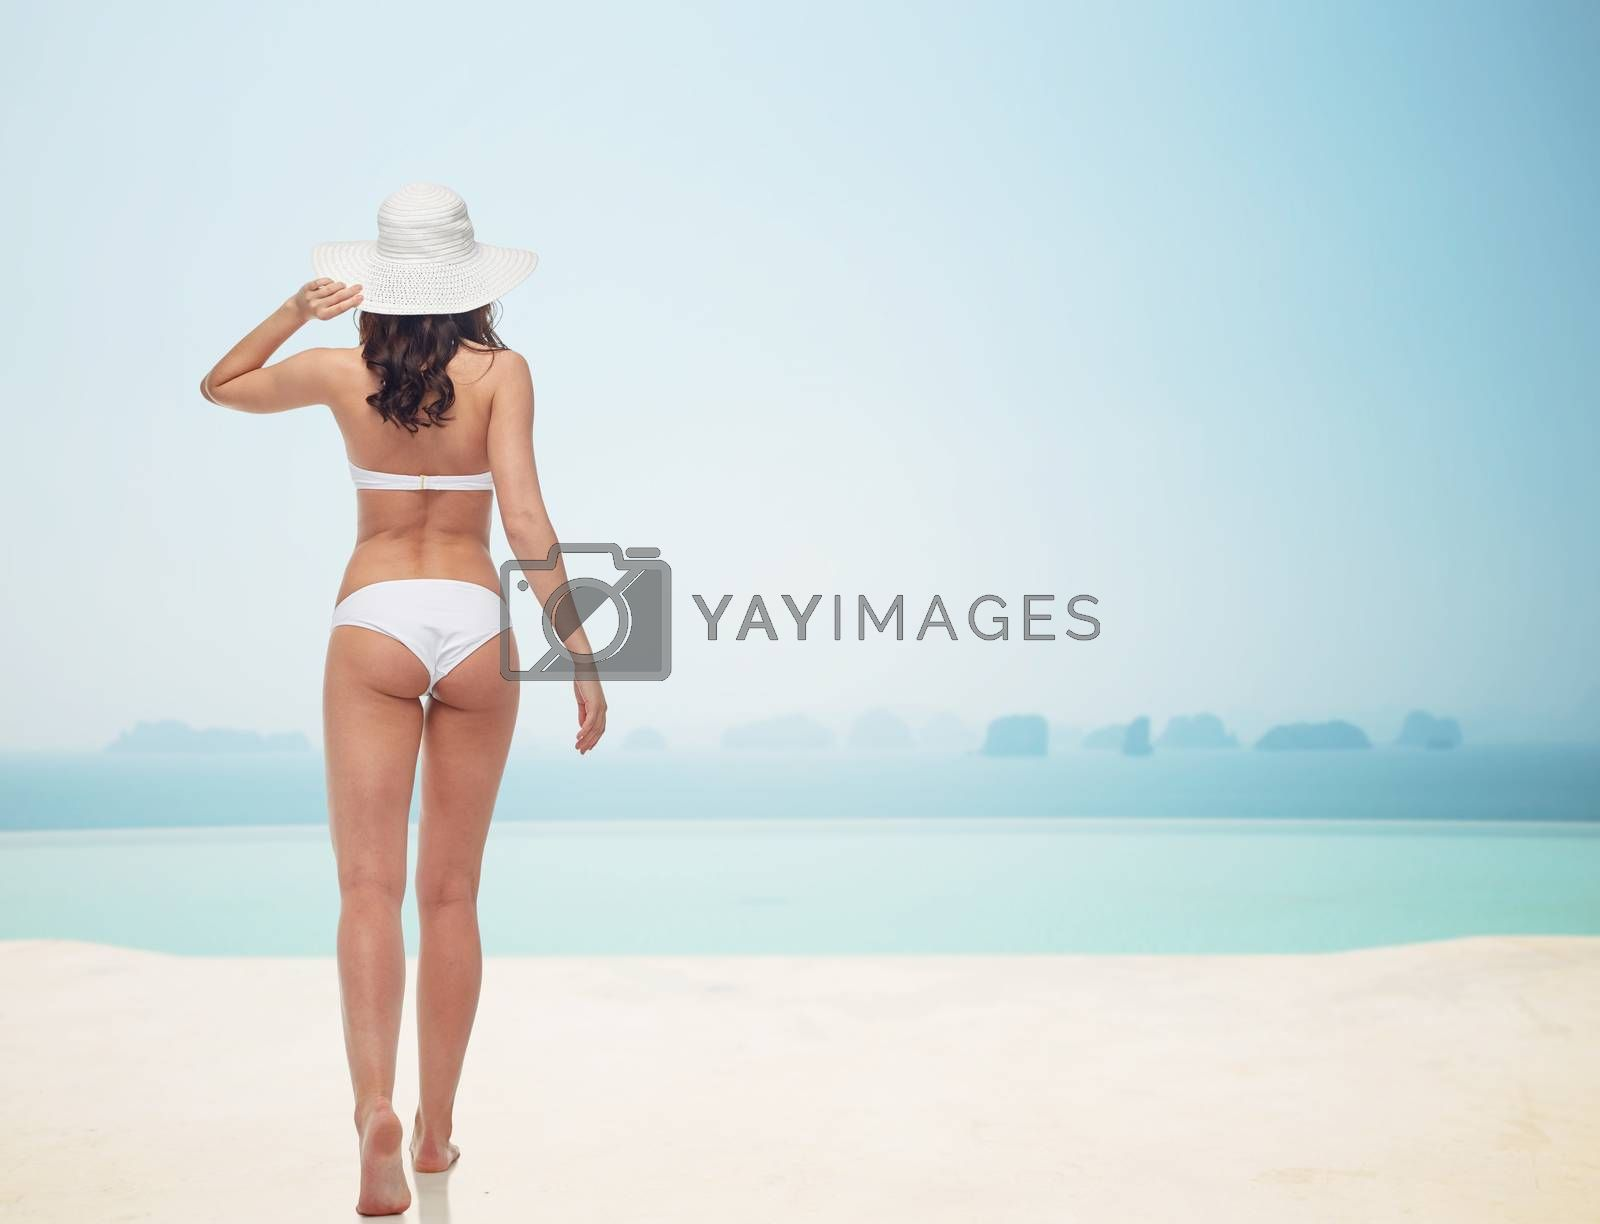 people, fashion, swimwear, summer beach and beauty concept - young woman in white bikini swimsuit from back over infinity pool at beach resort